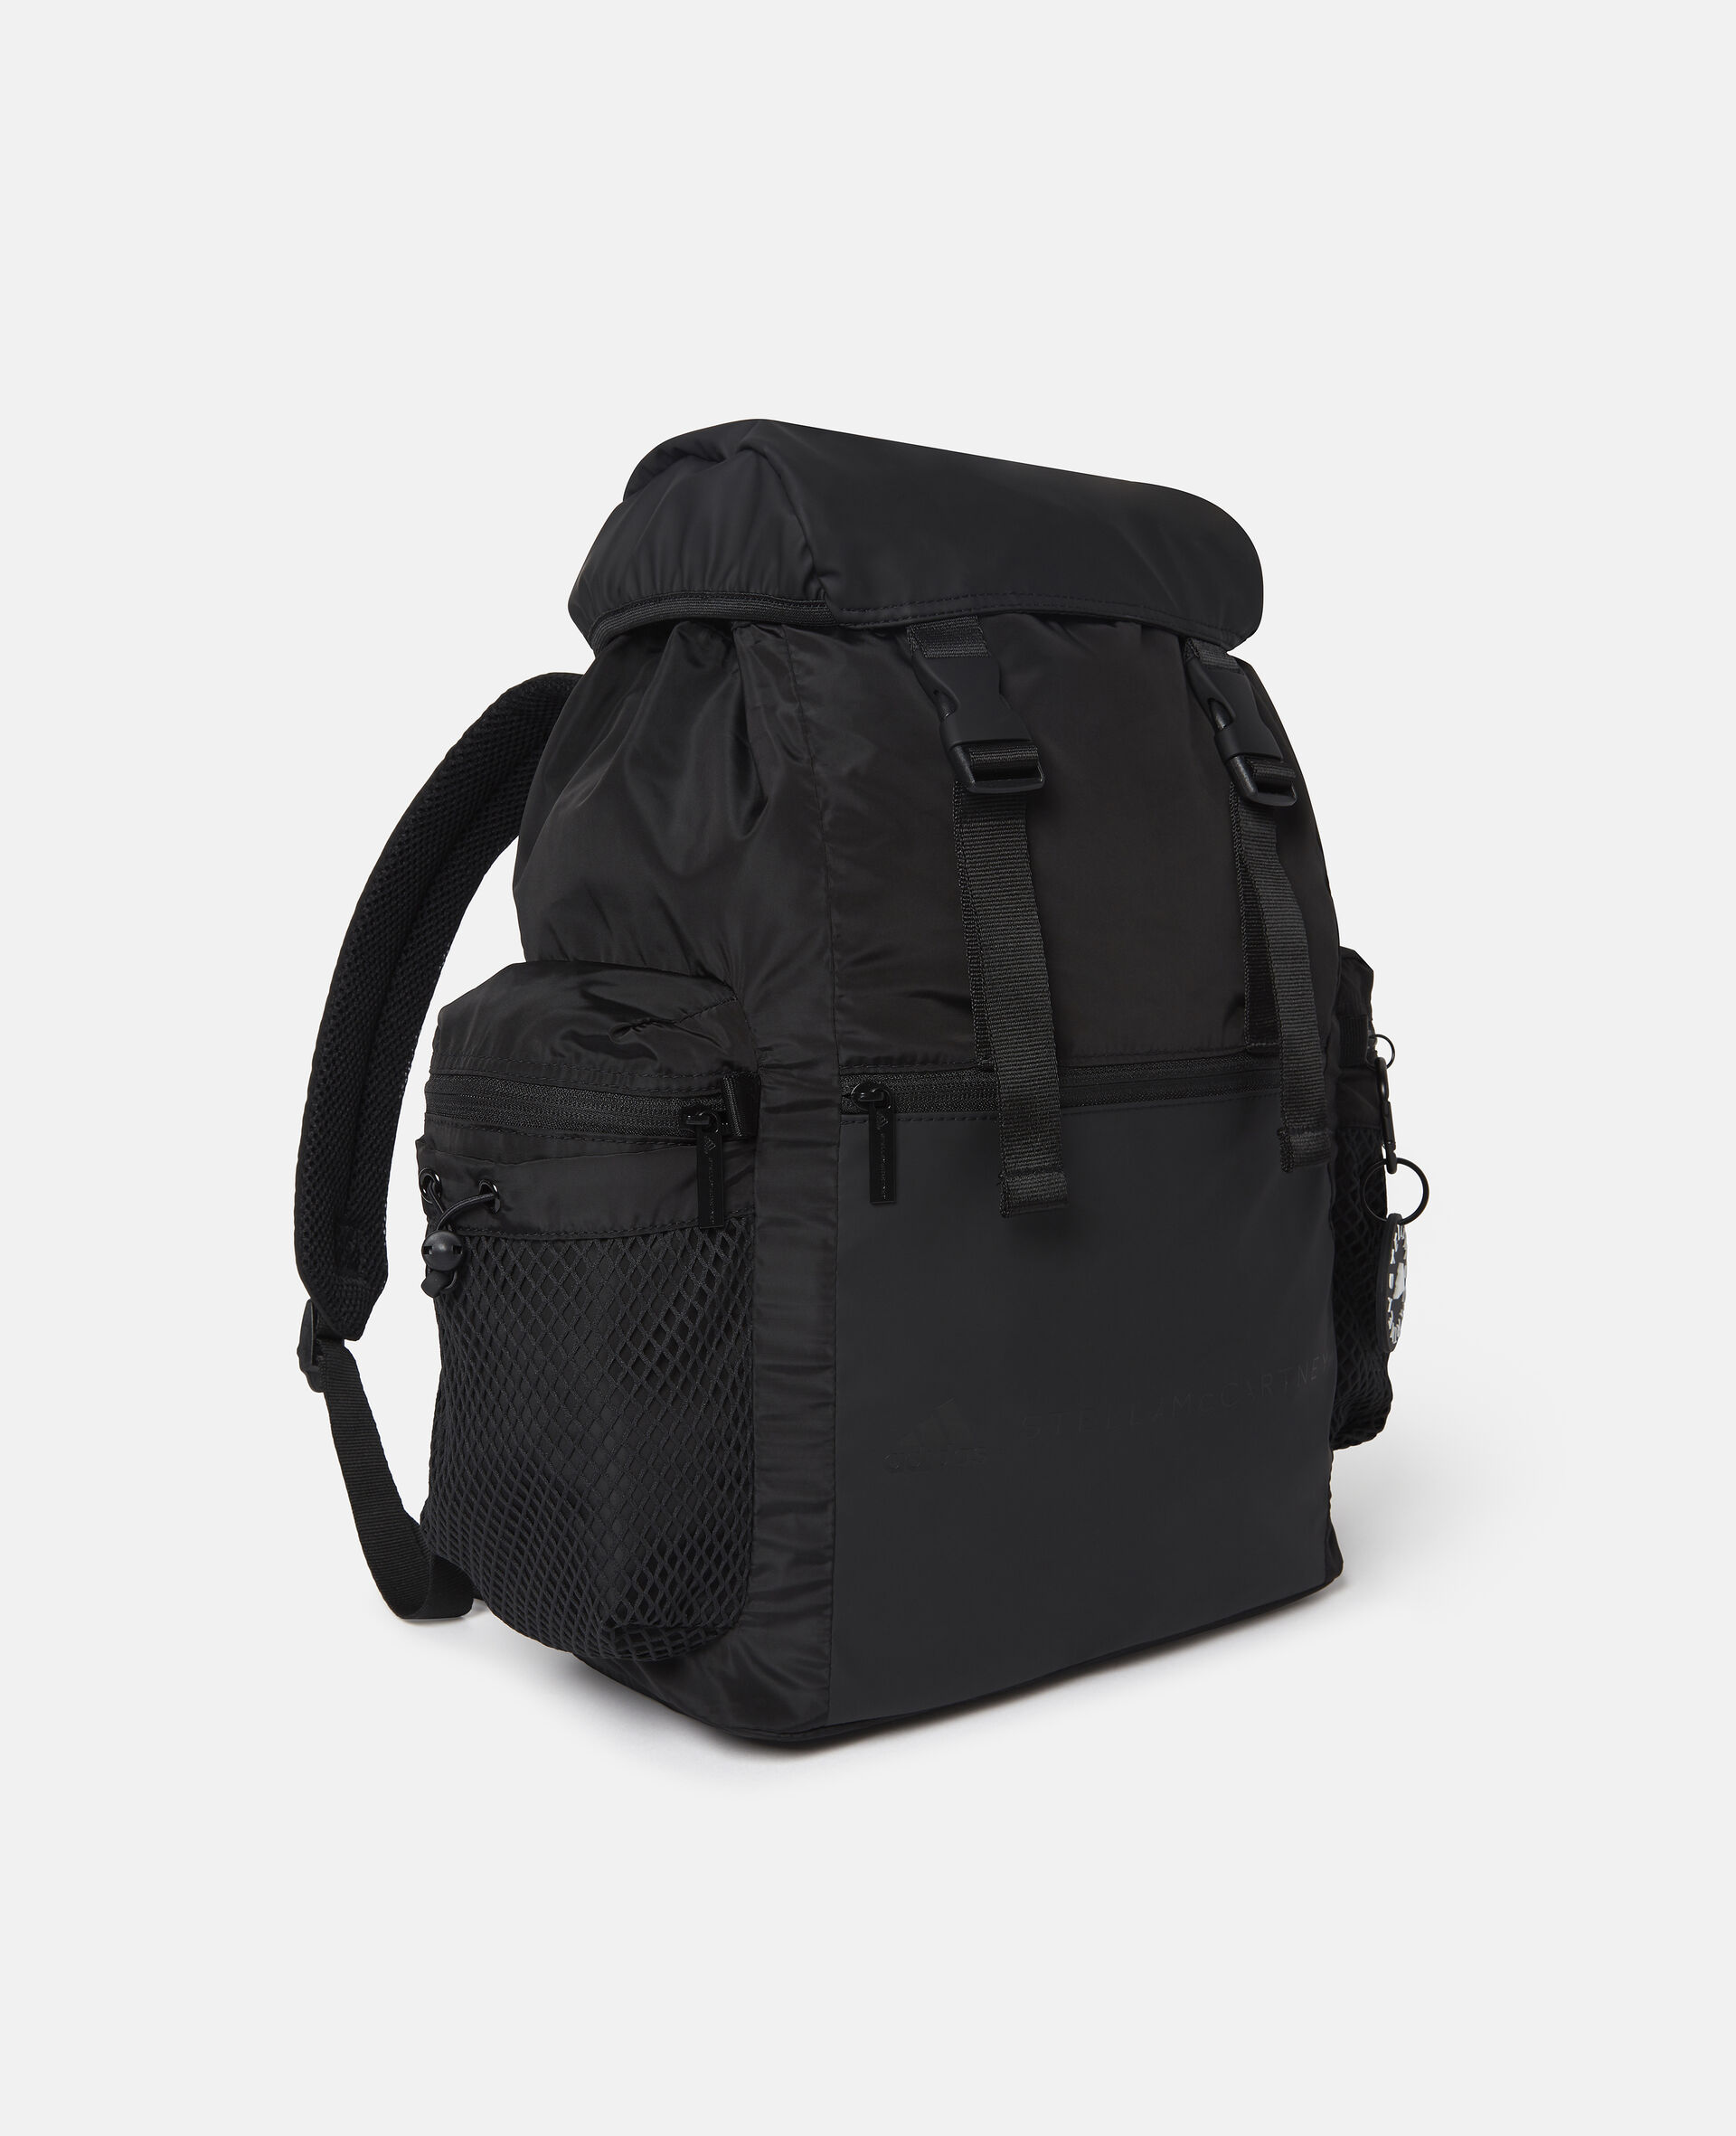 Backpack-Multicolour-large image number 3